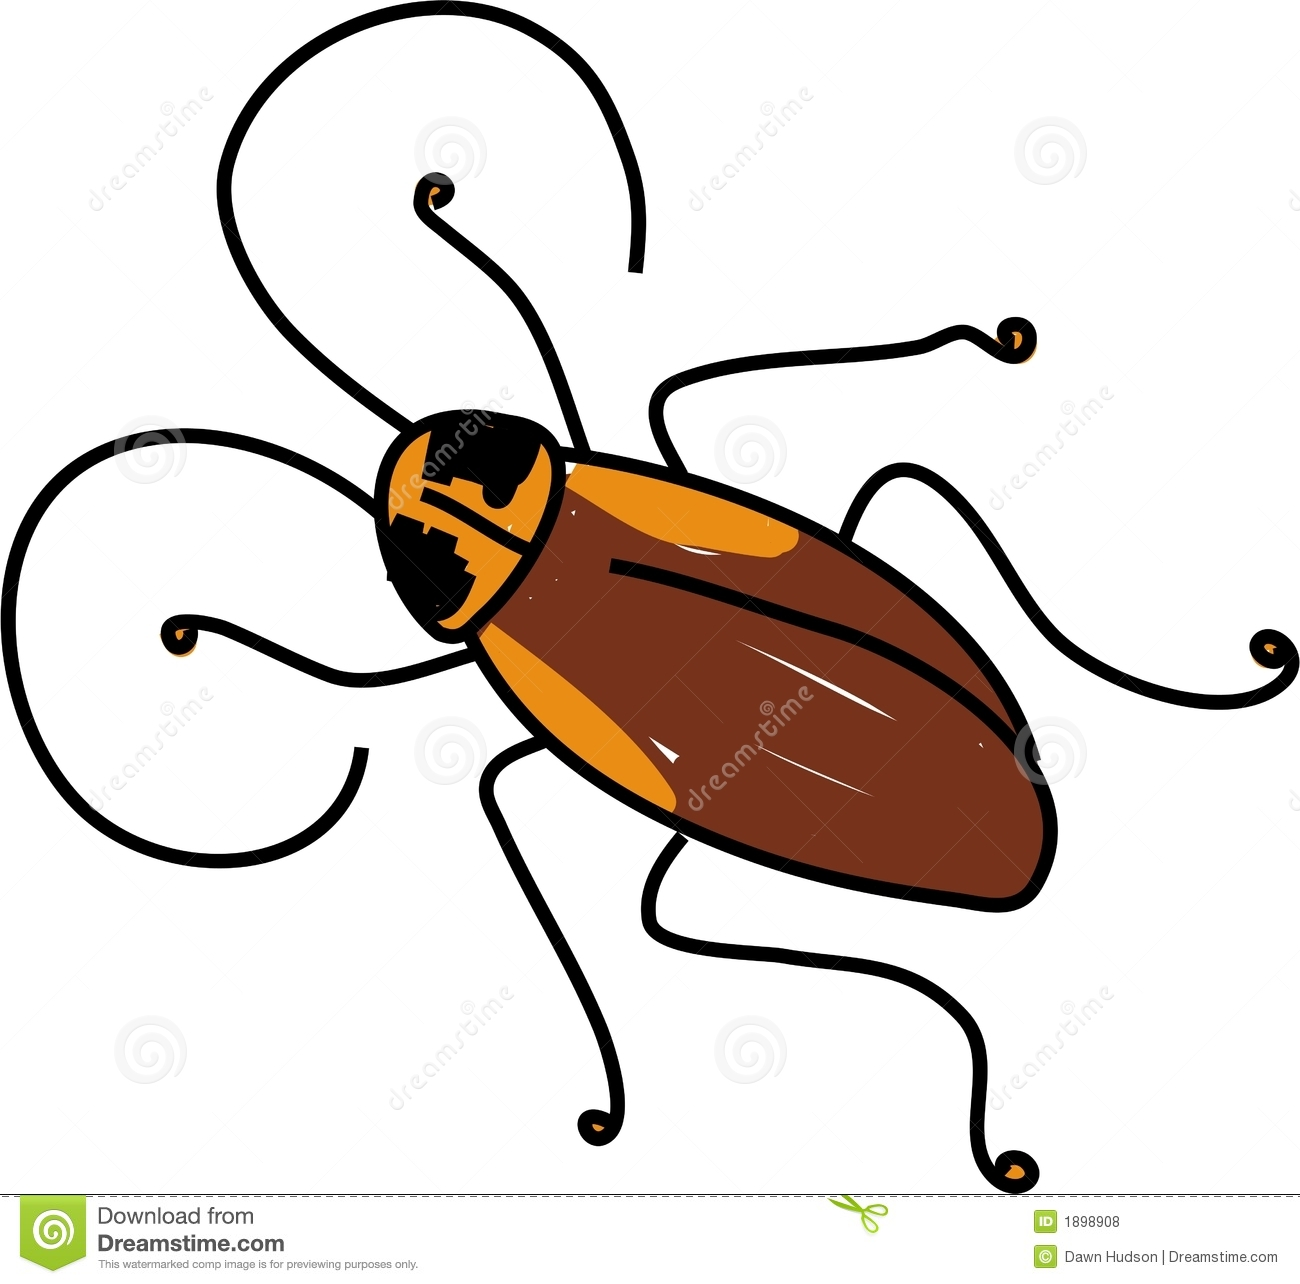 Clip Art Insect Cockroach Royalty Free...